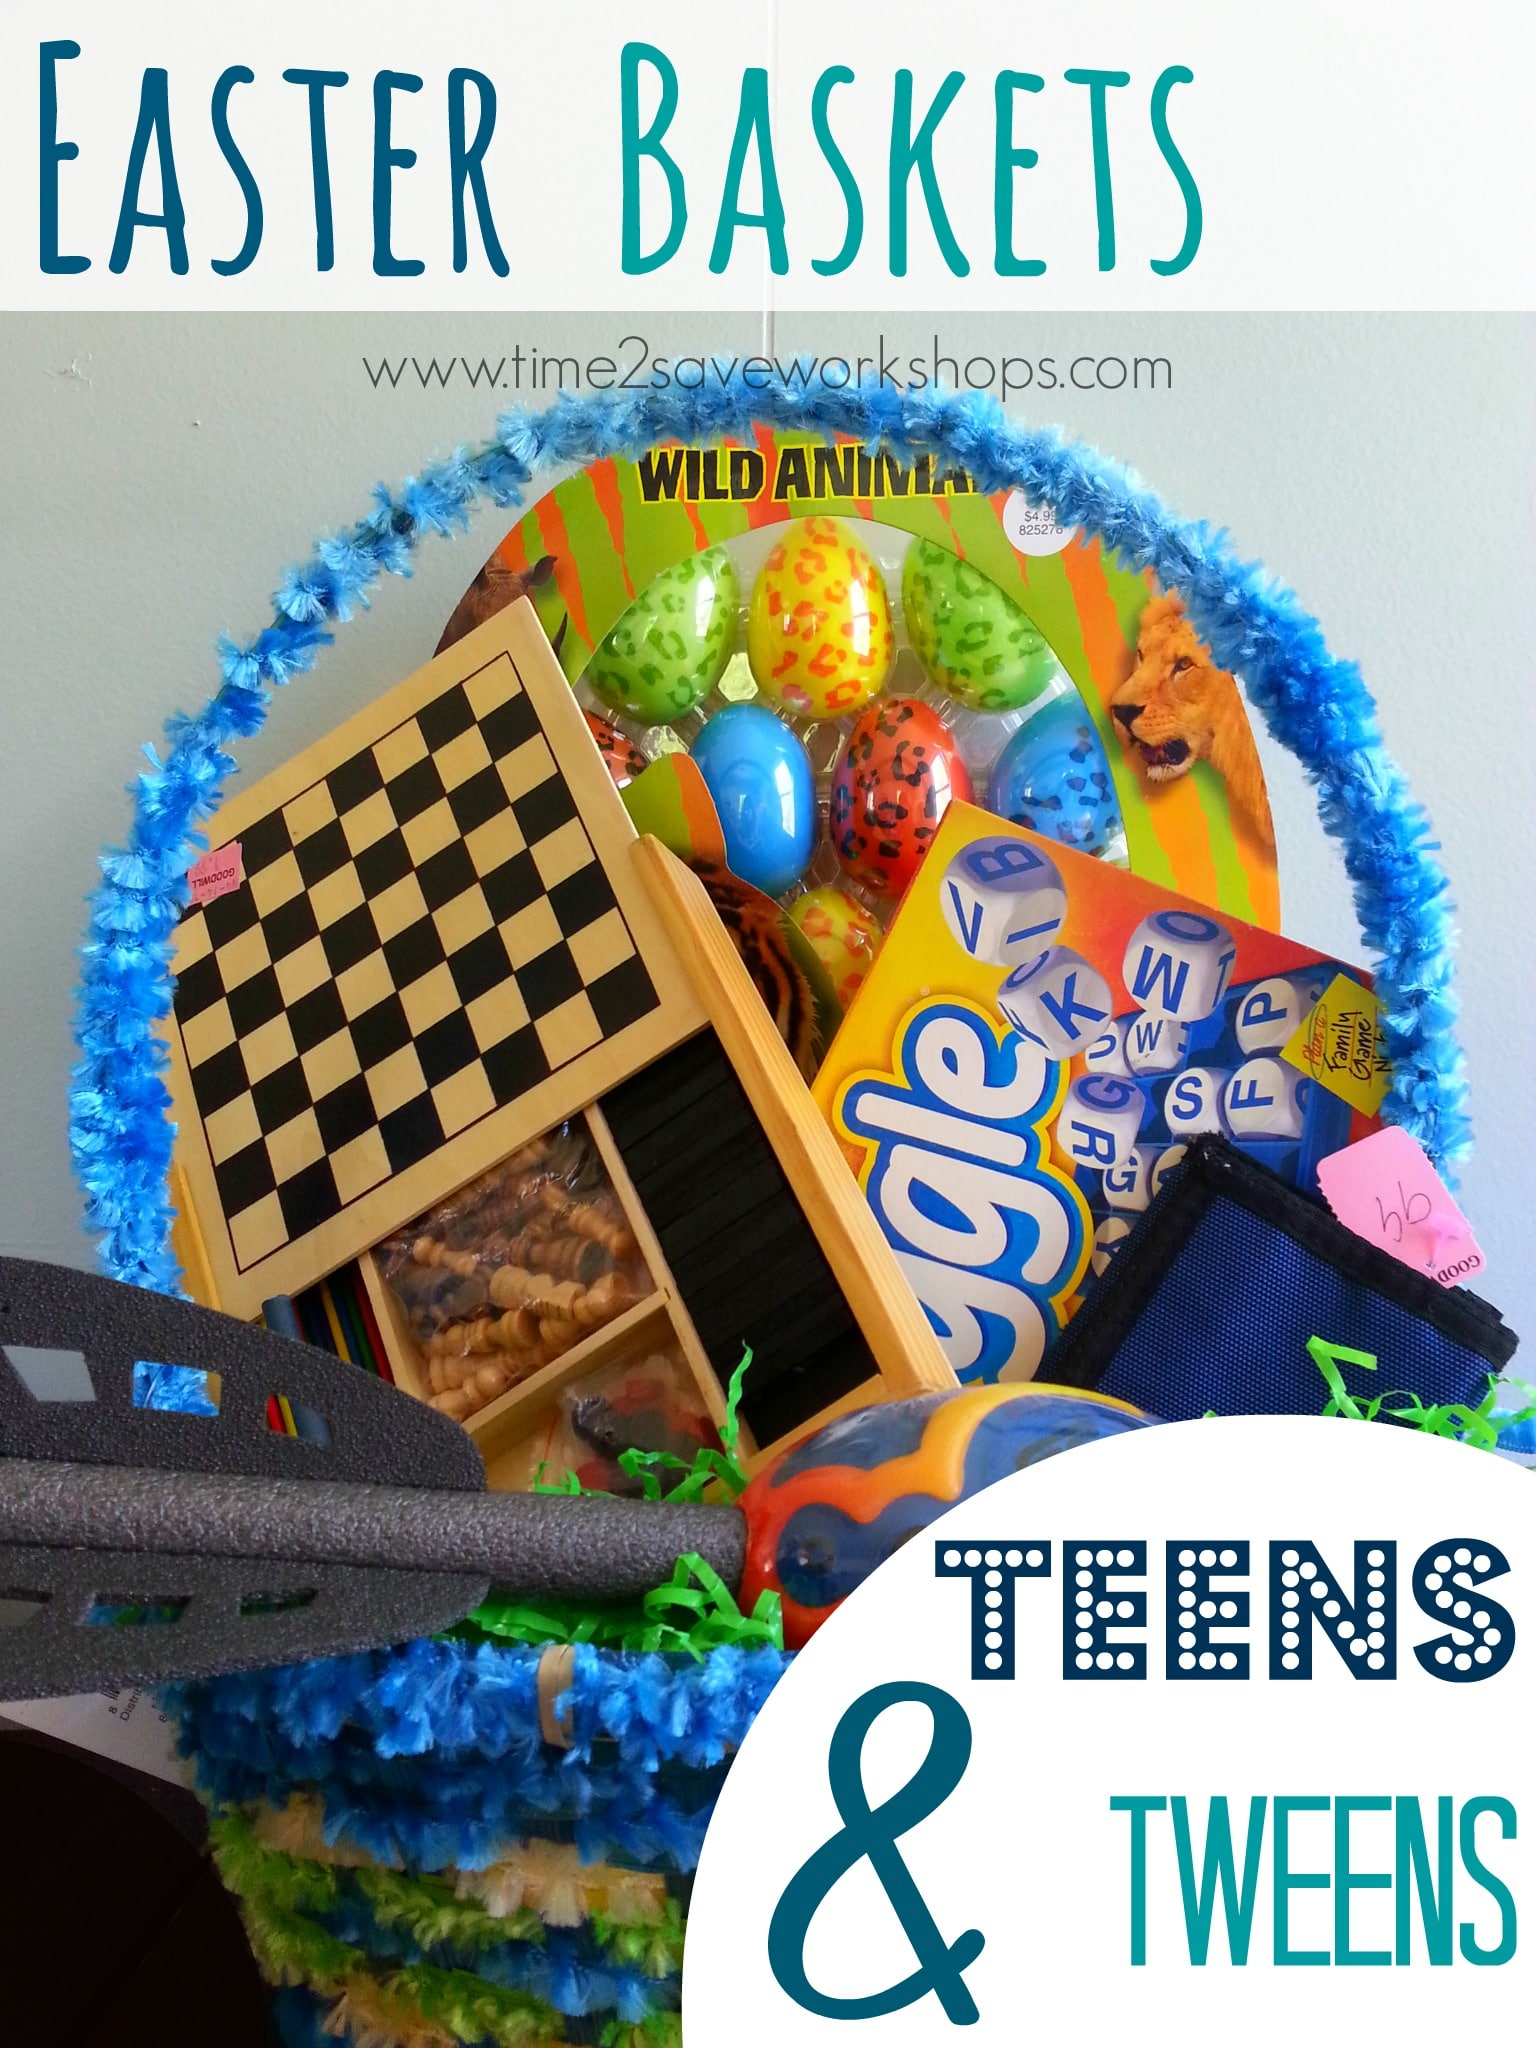 Easter baskets for teens tweens 6 frugal ideas kasey trenum easter baskets for teens tweens 6 frugal ideas negle